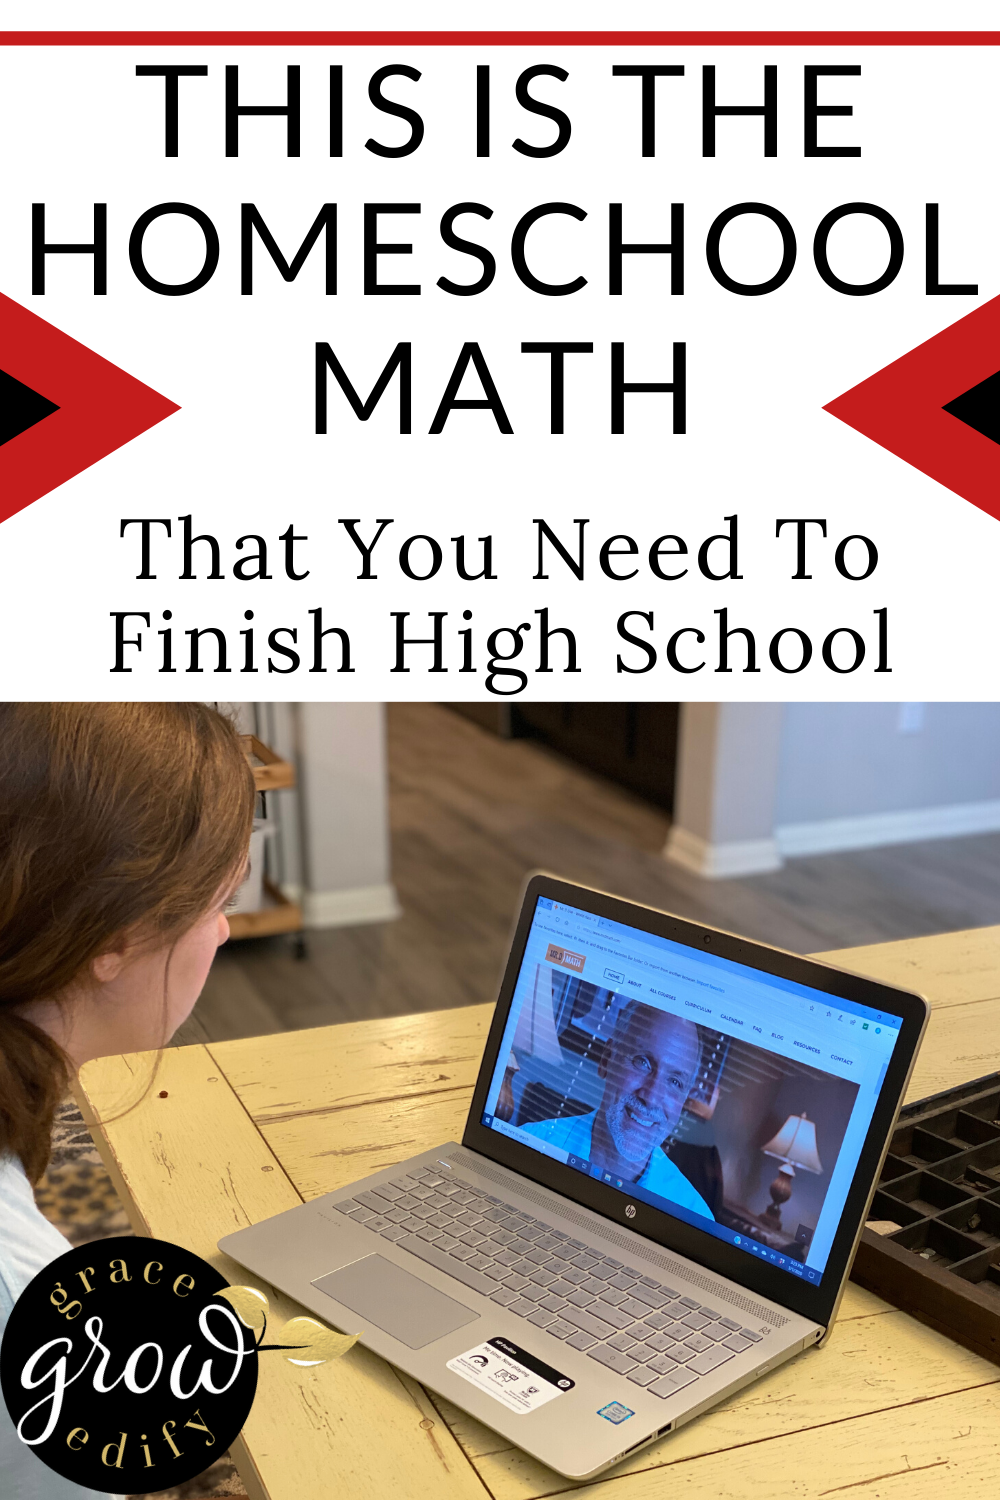 This Is The Homeschool Math That You Need To Finish High